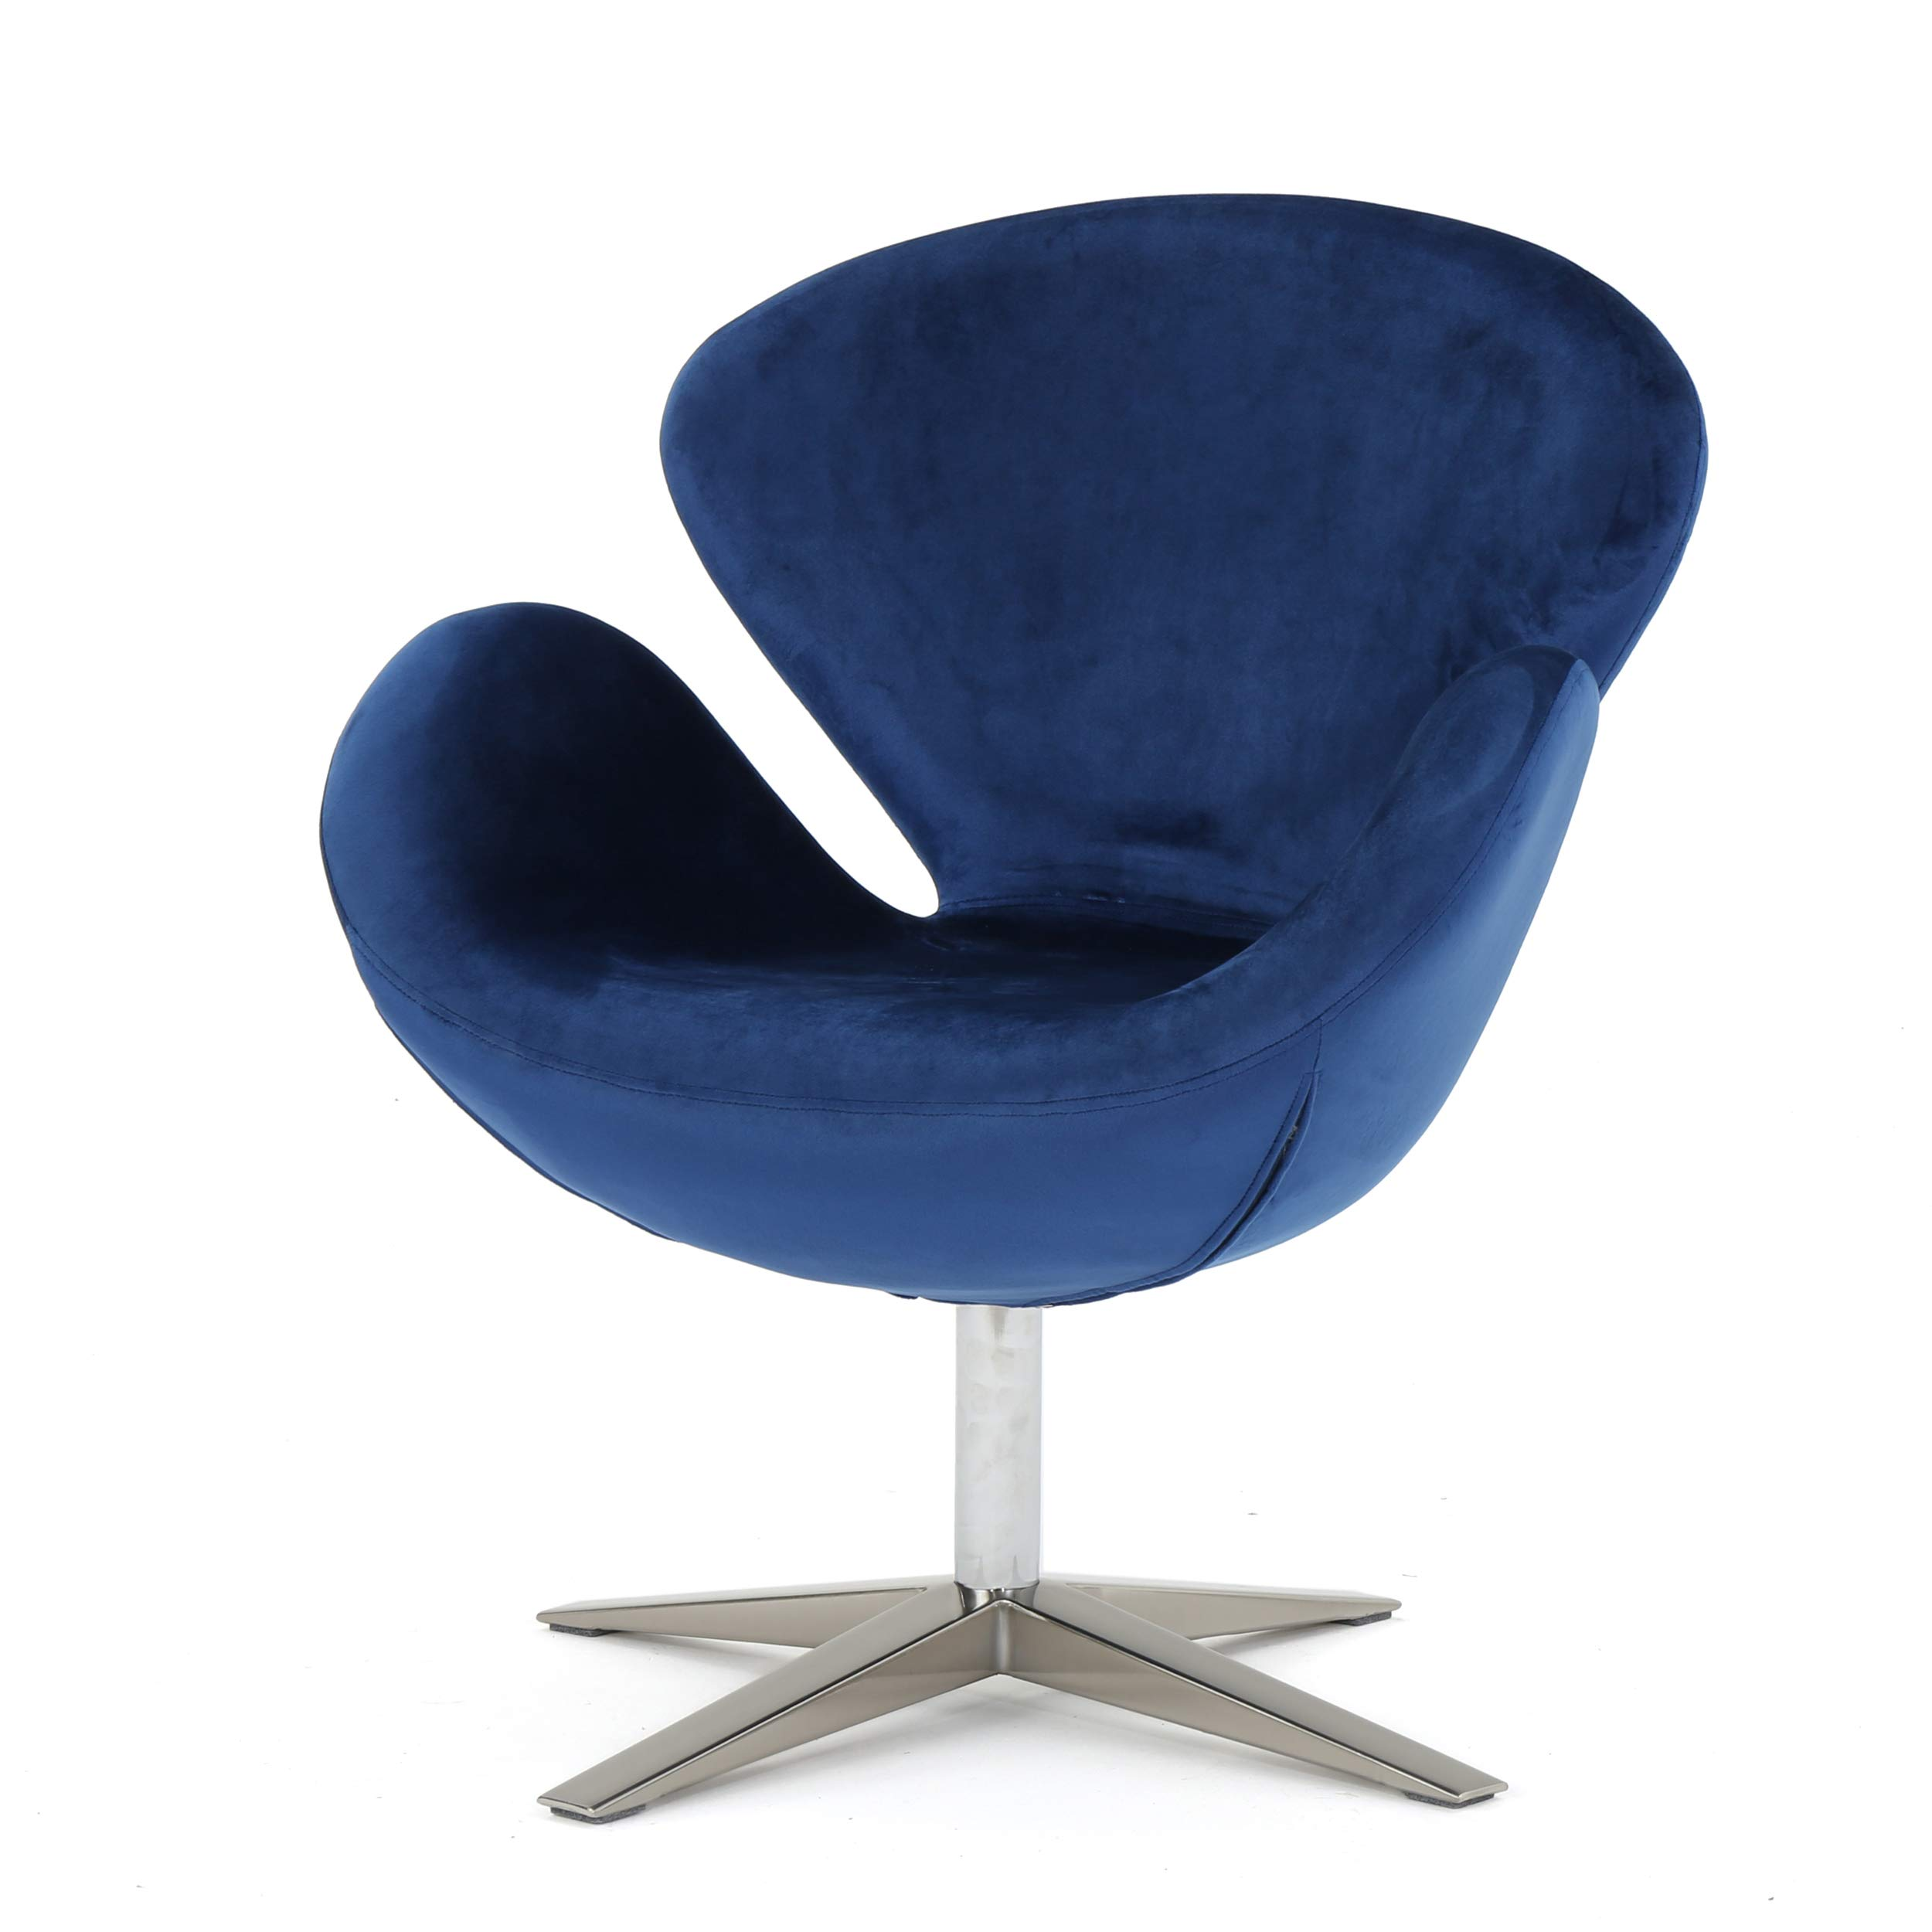 Christopher Knight Home Manhatten New Velvet Modern Swivel Chair (Navy Blue) by Christopher Knight Home